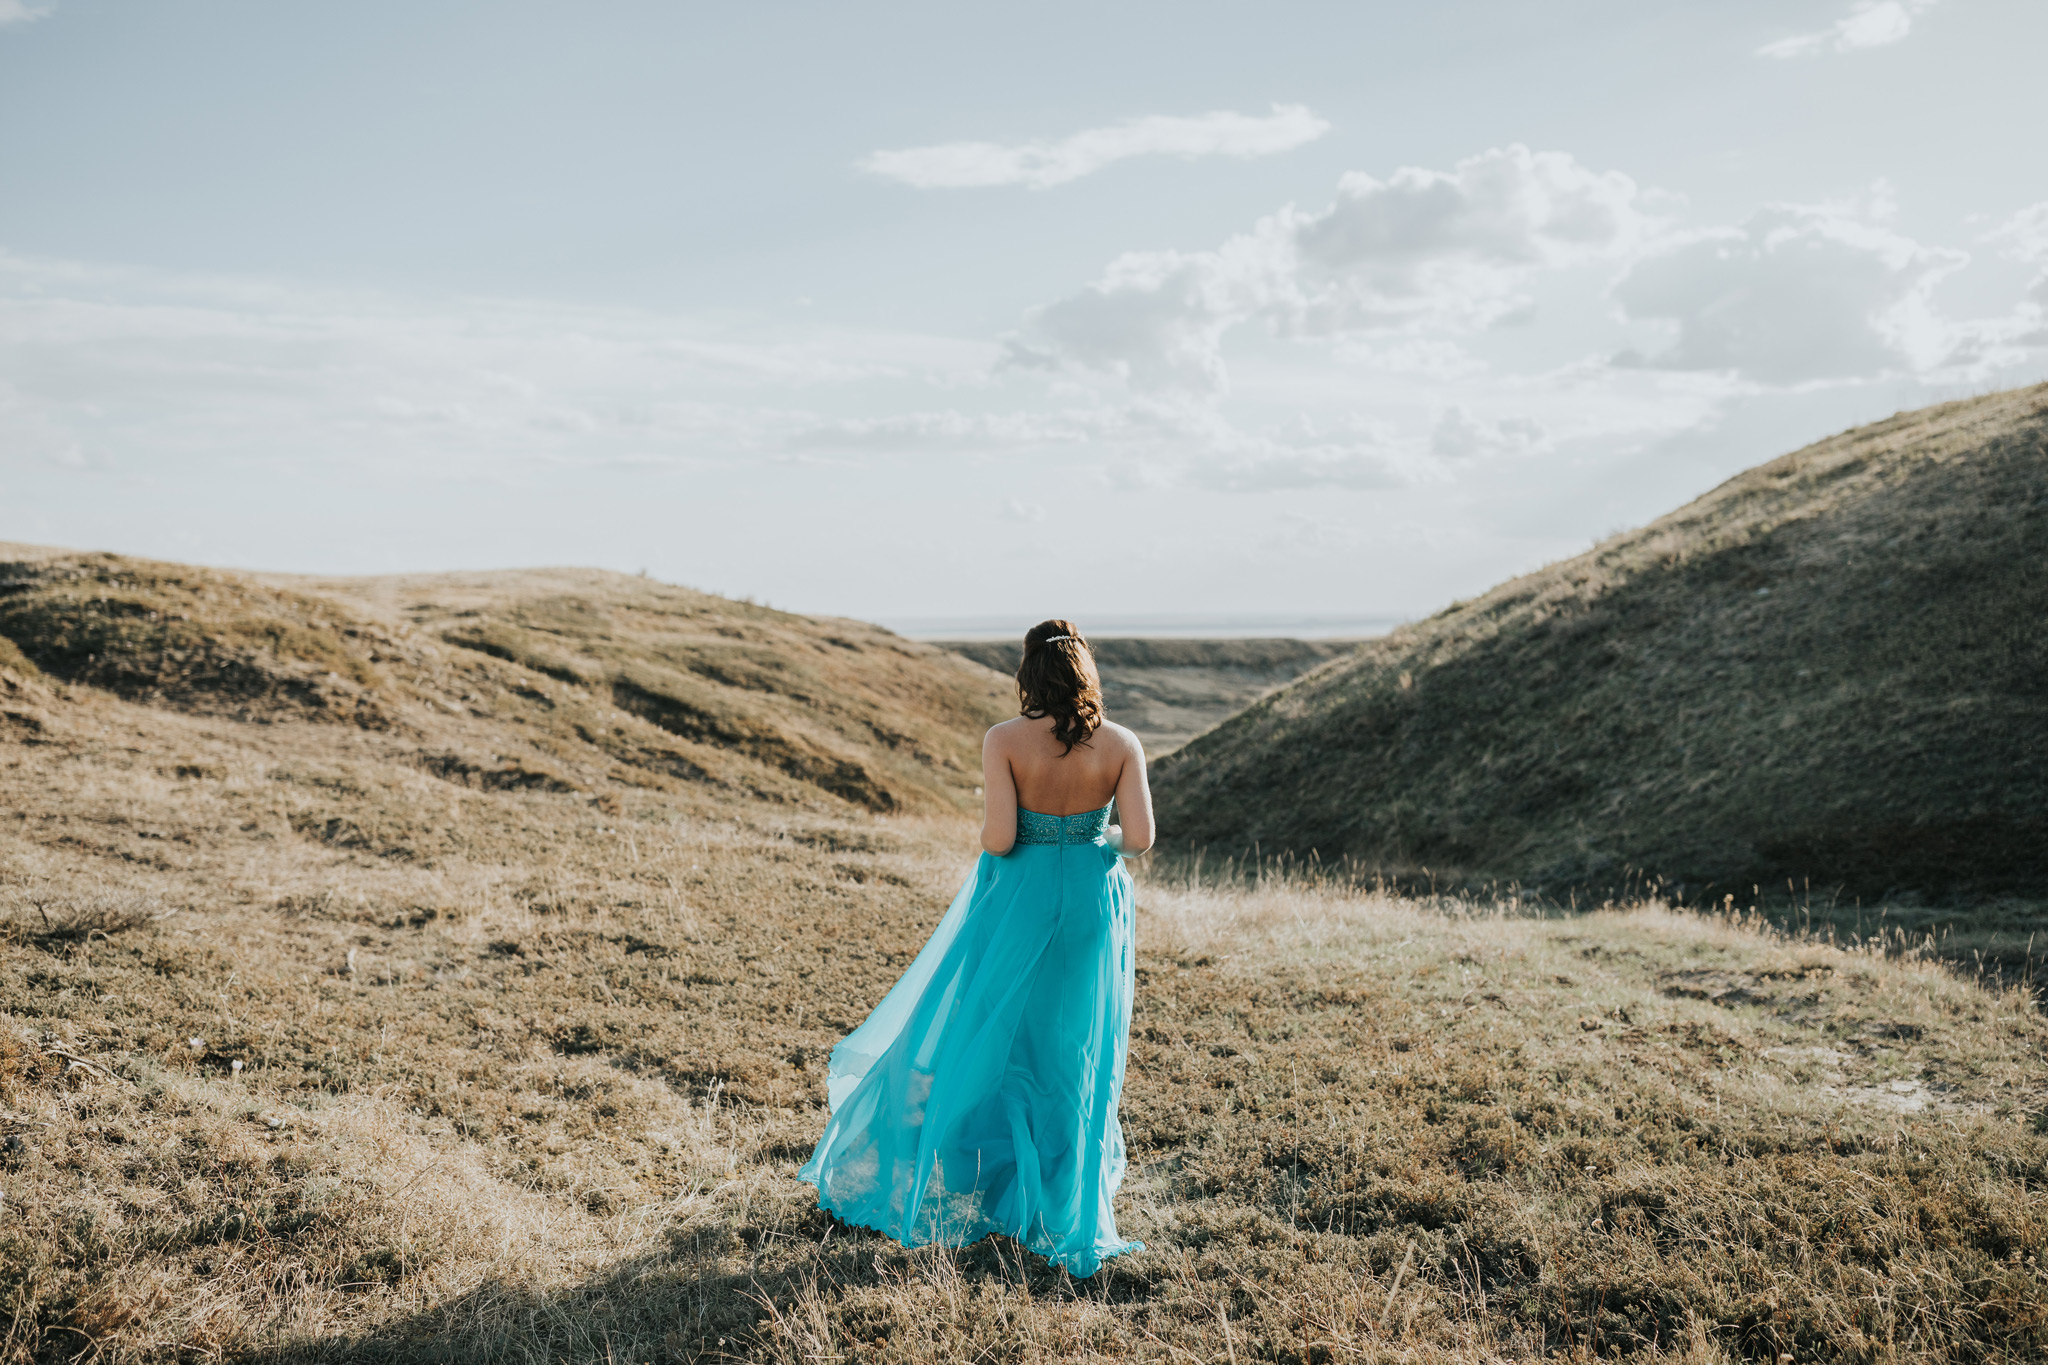 girl in grad dress walking out into landscape coulee